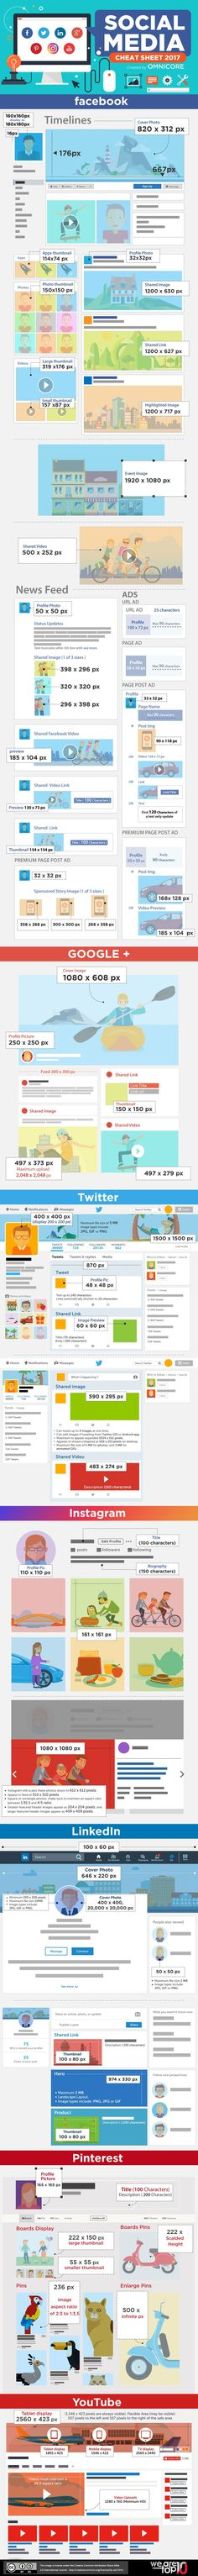 This new infographic outlines the optimal image display sizes across all the major social platforms.